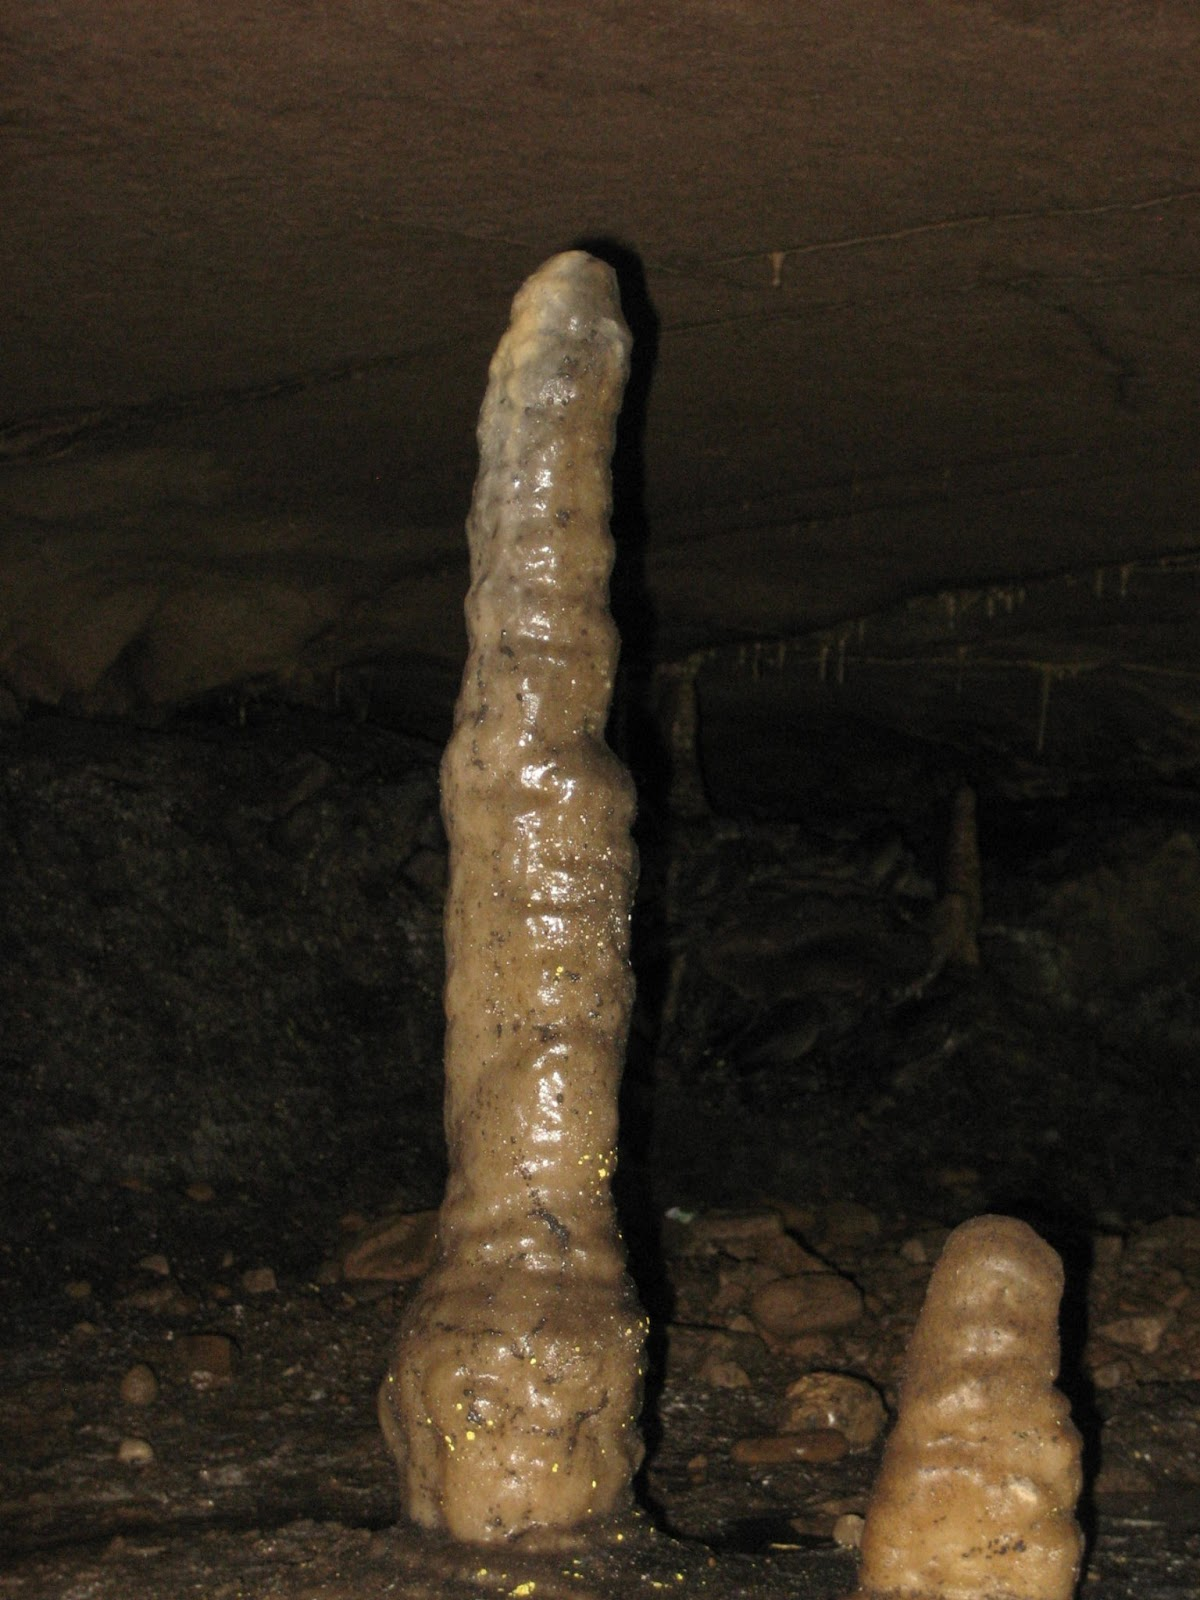 Stalagmites in the appropriately named Skittle Alley. Stephen Oldfield